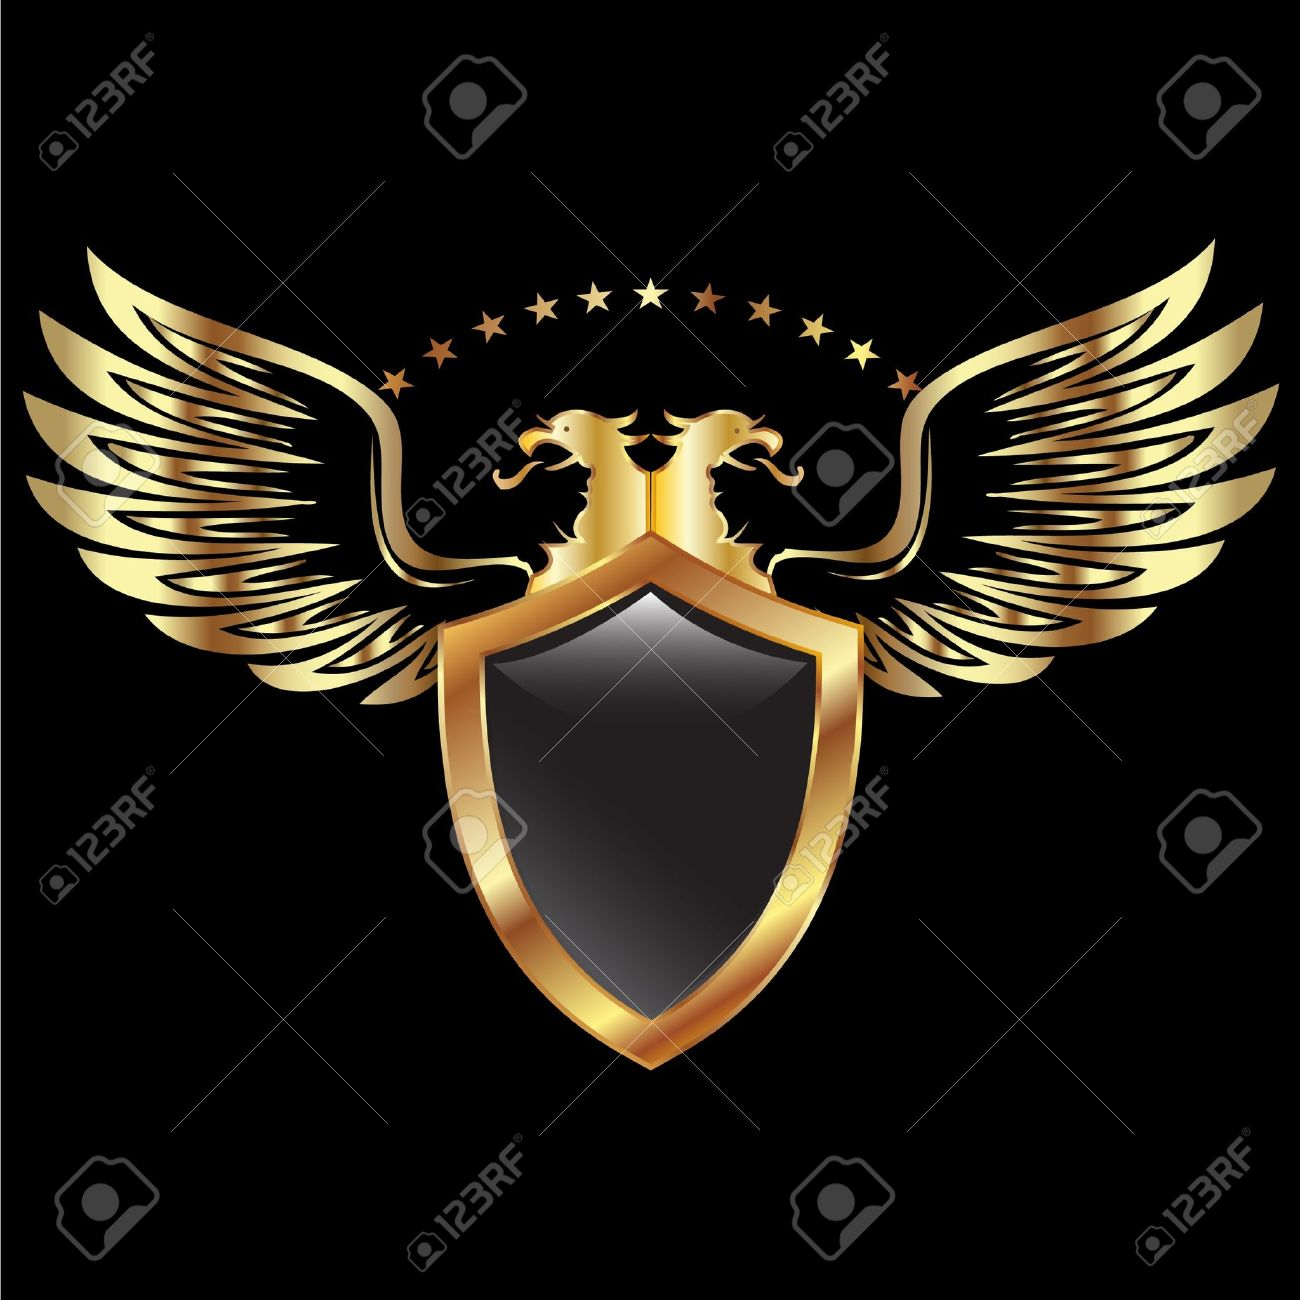 Eagle shield and wings - 11500495